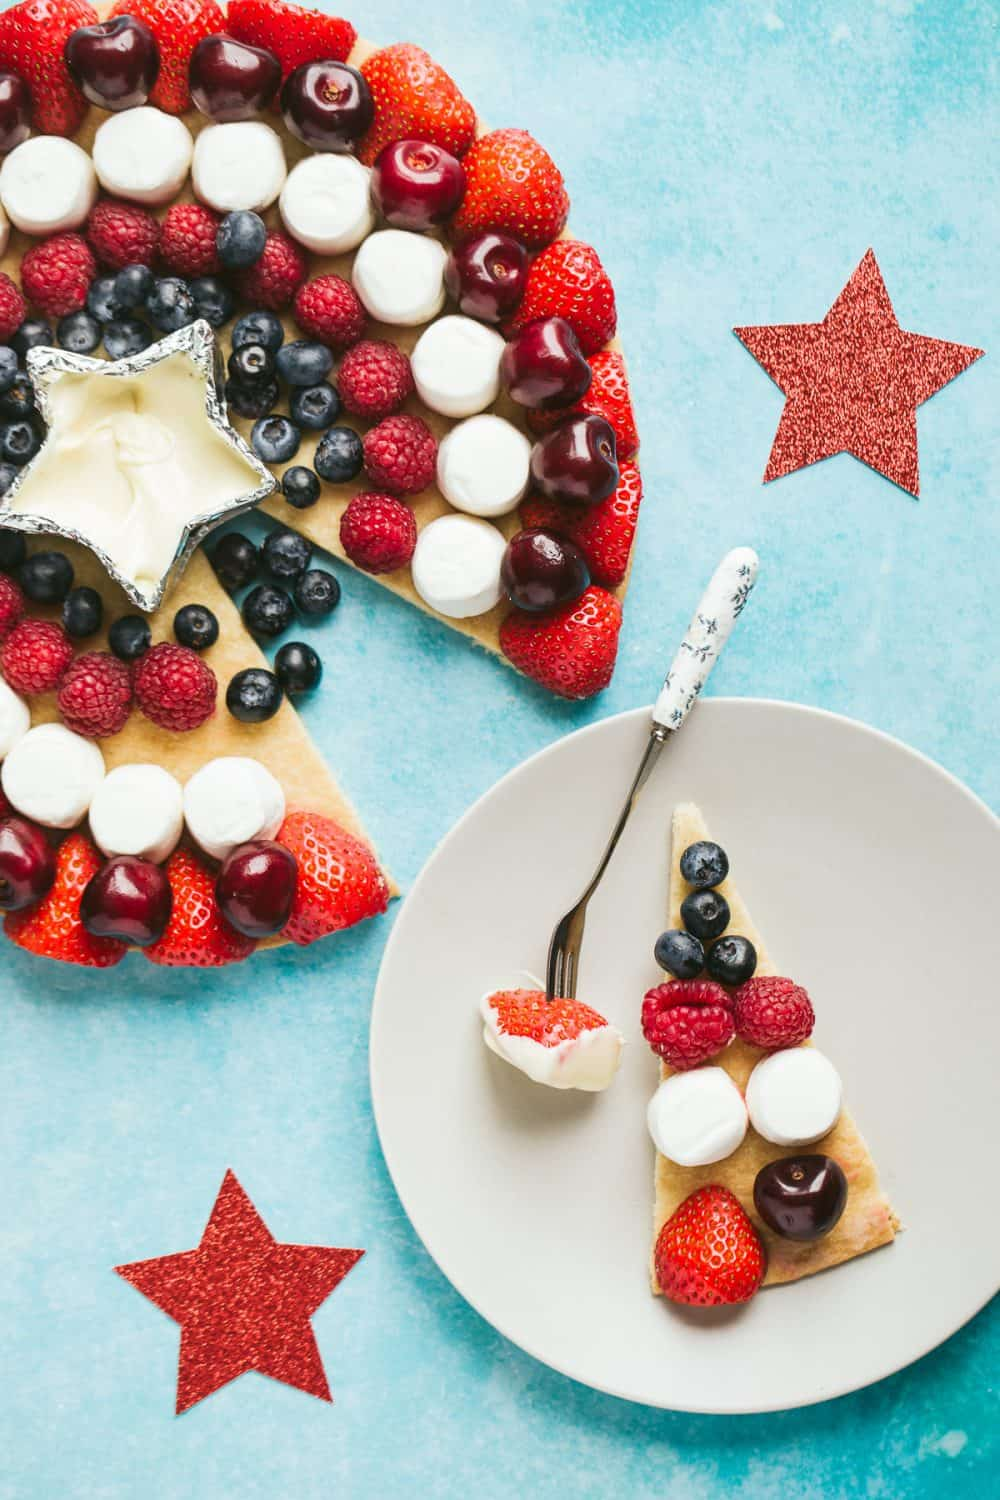 A fruit platter in the shape of a Captain America Shield with a slice cut out on a small plate.